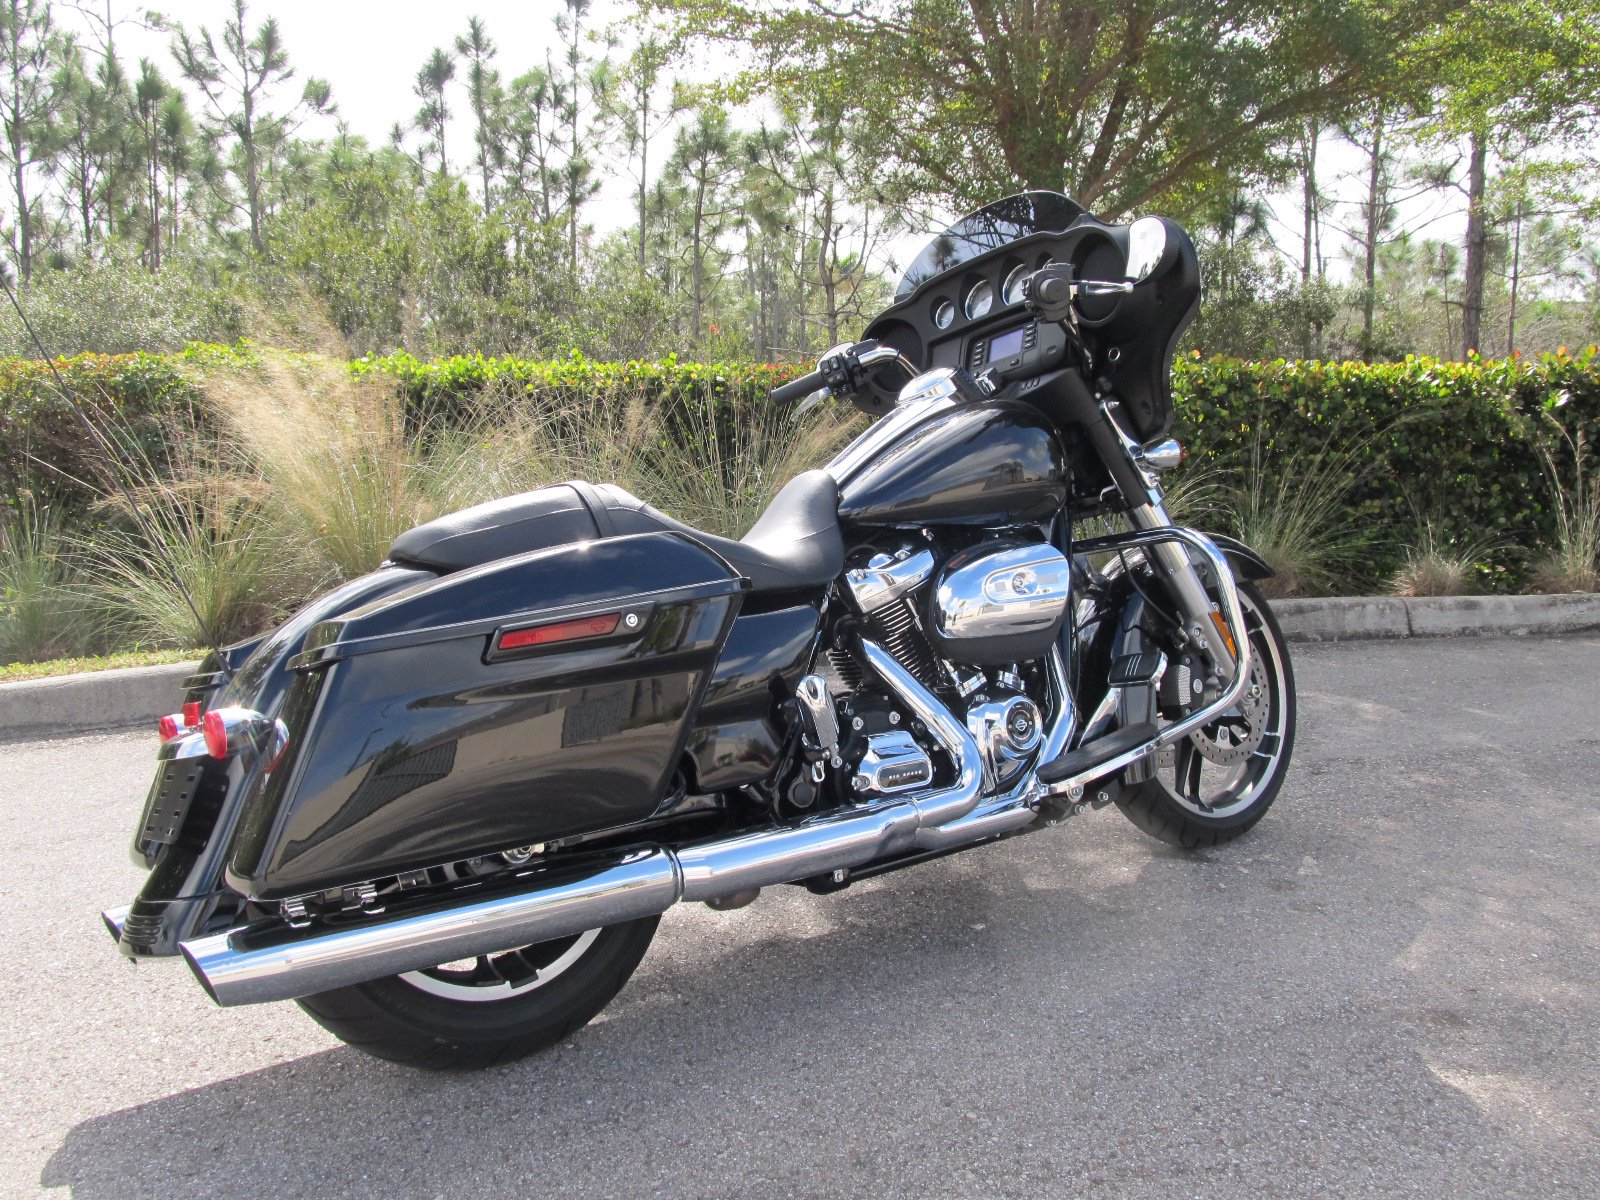 Pre-Owned 2019 Harley-Davidson Street Glide FLHX Touring ...